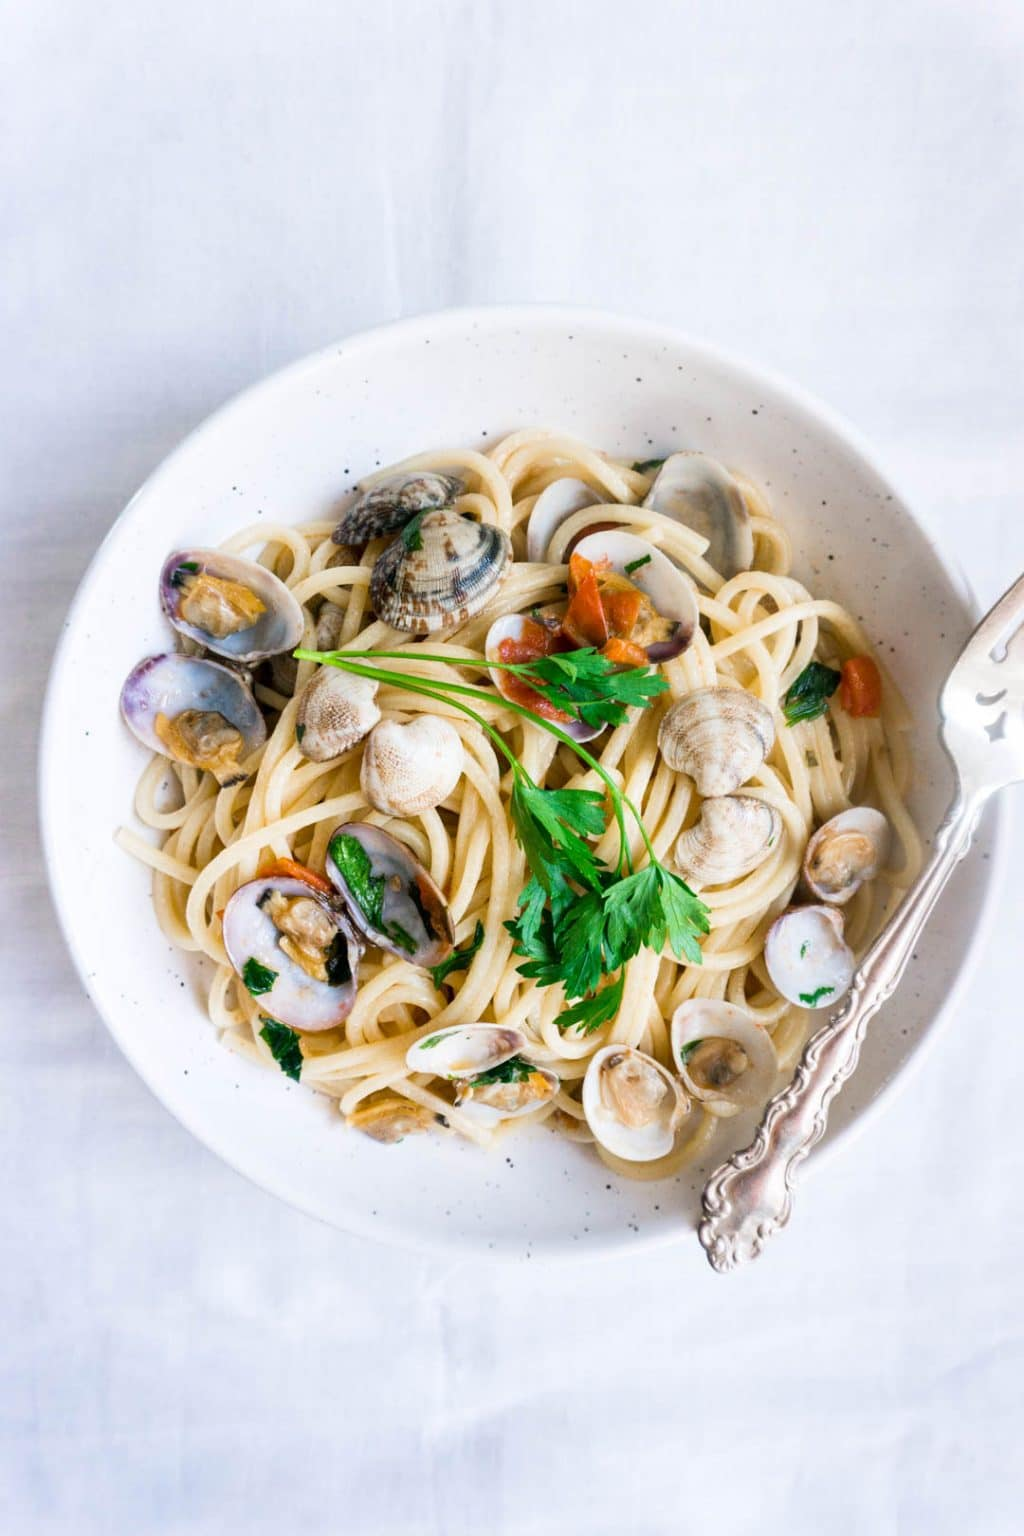 Pasta alle vongole - Spaghetti with clam and tomato sauce